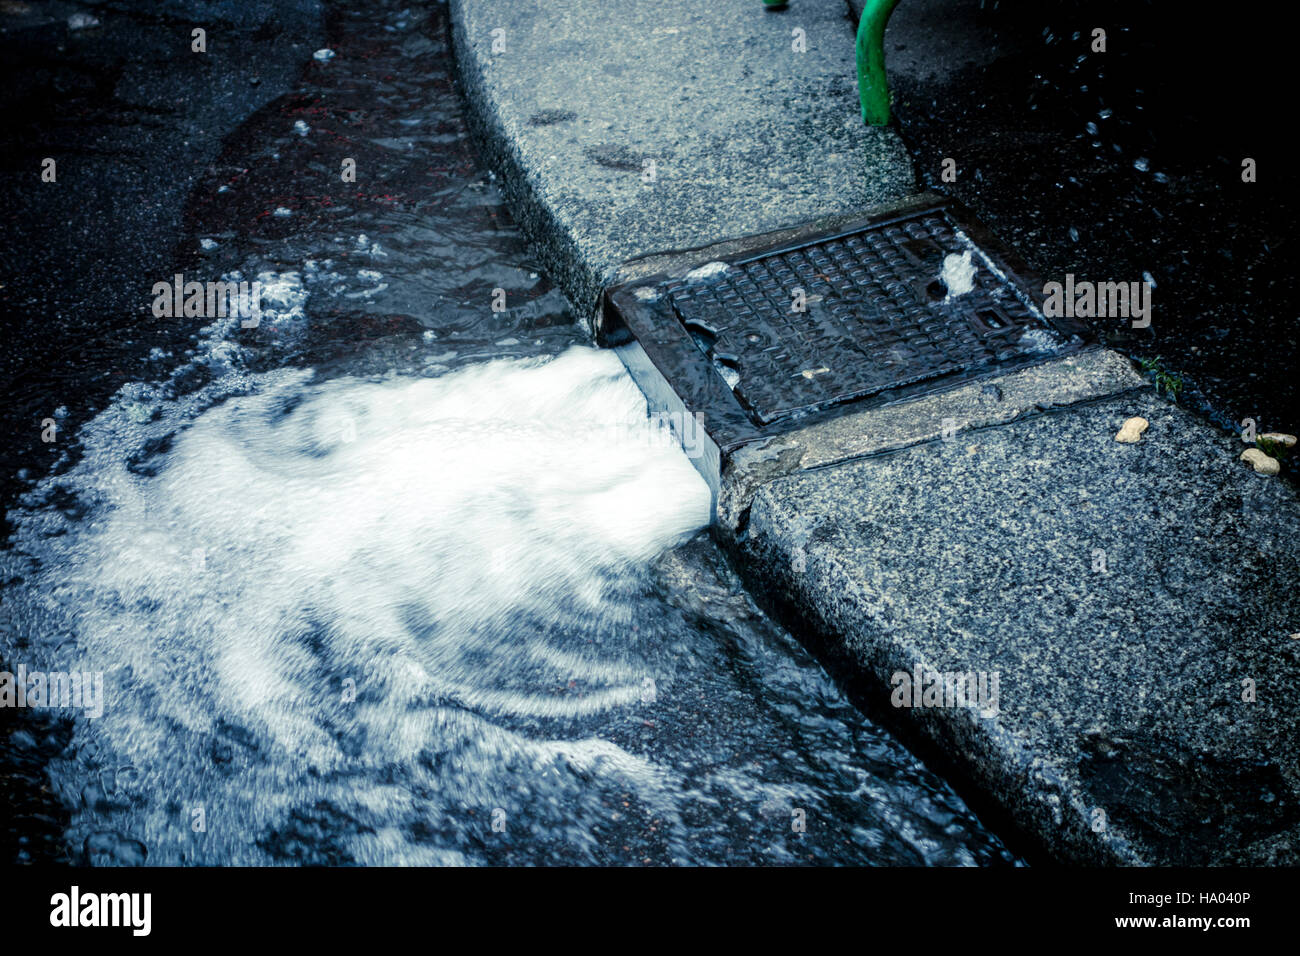 Water flowing out of a sewer, Paris - Stock Image